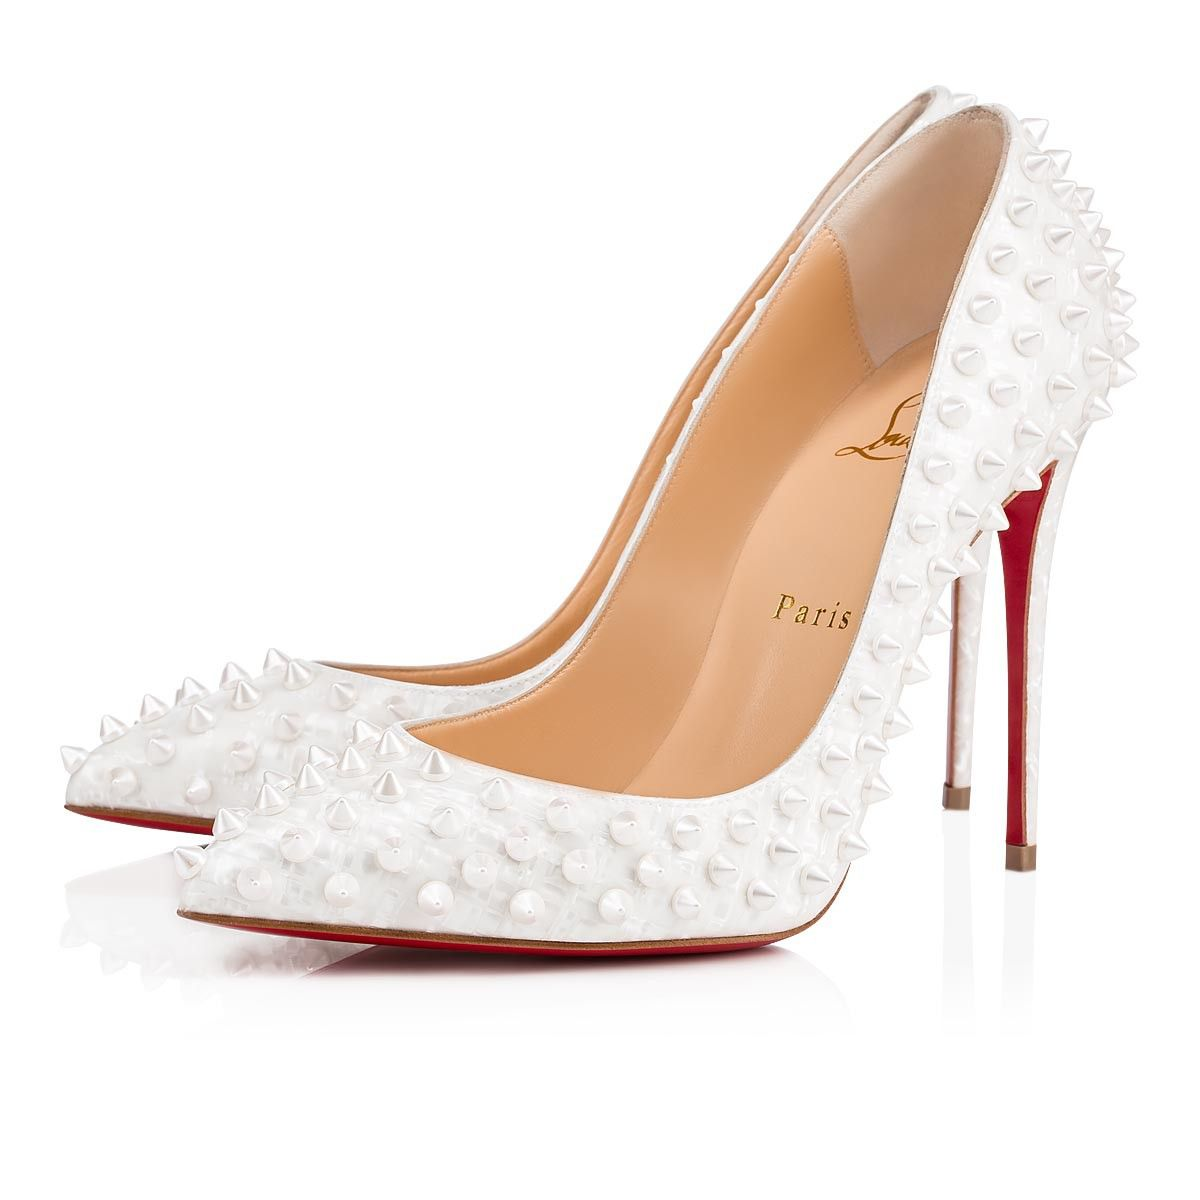 28f47b4c9903 Sport a uniquely Parisian look with the timeless elegance of Christian  Louboutin s Follies Spikes pumps. A mother of pearl motif printed on foil  then ...